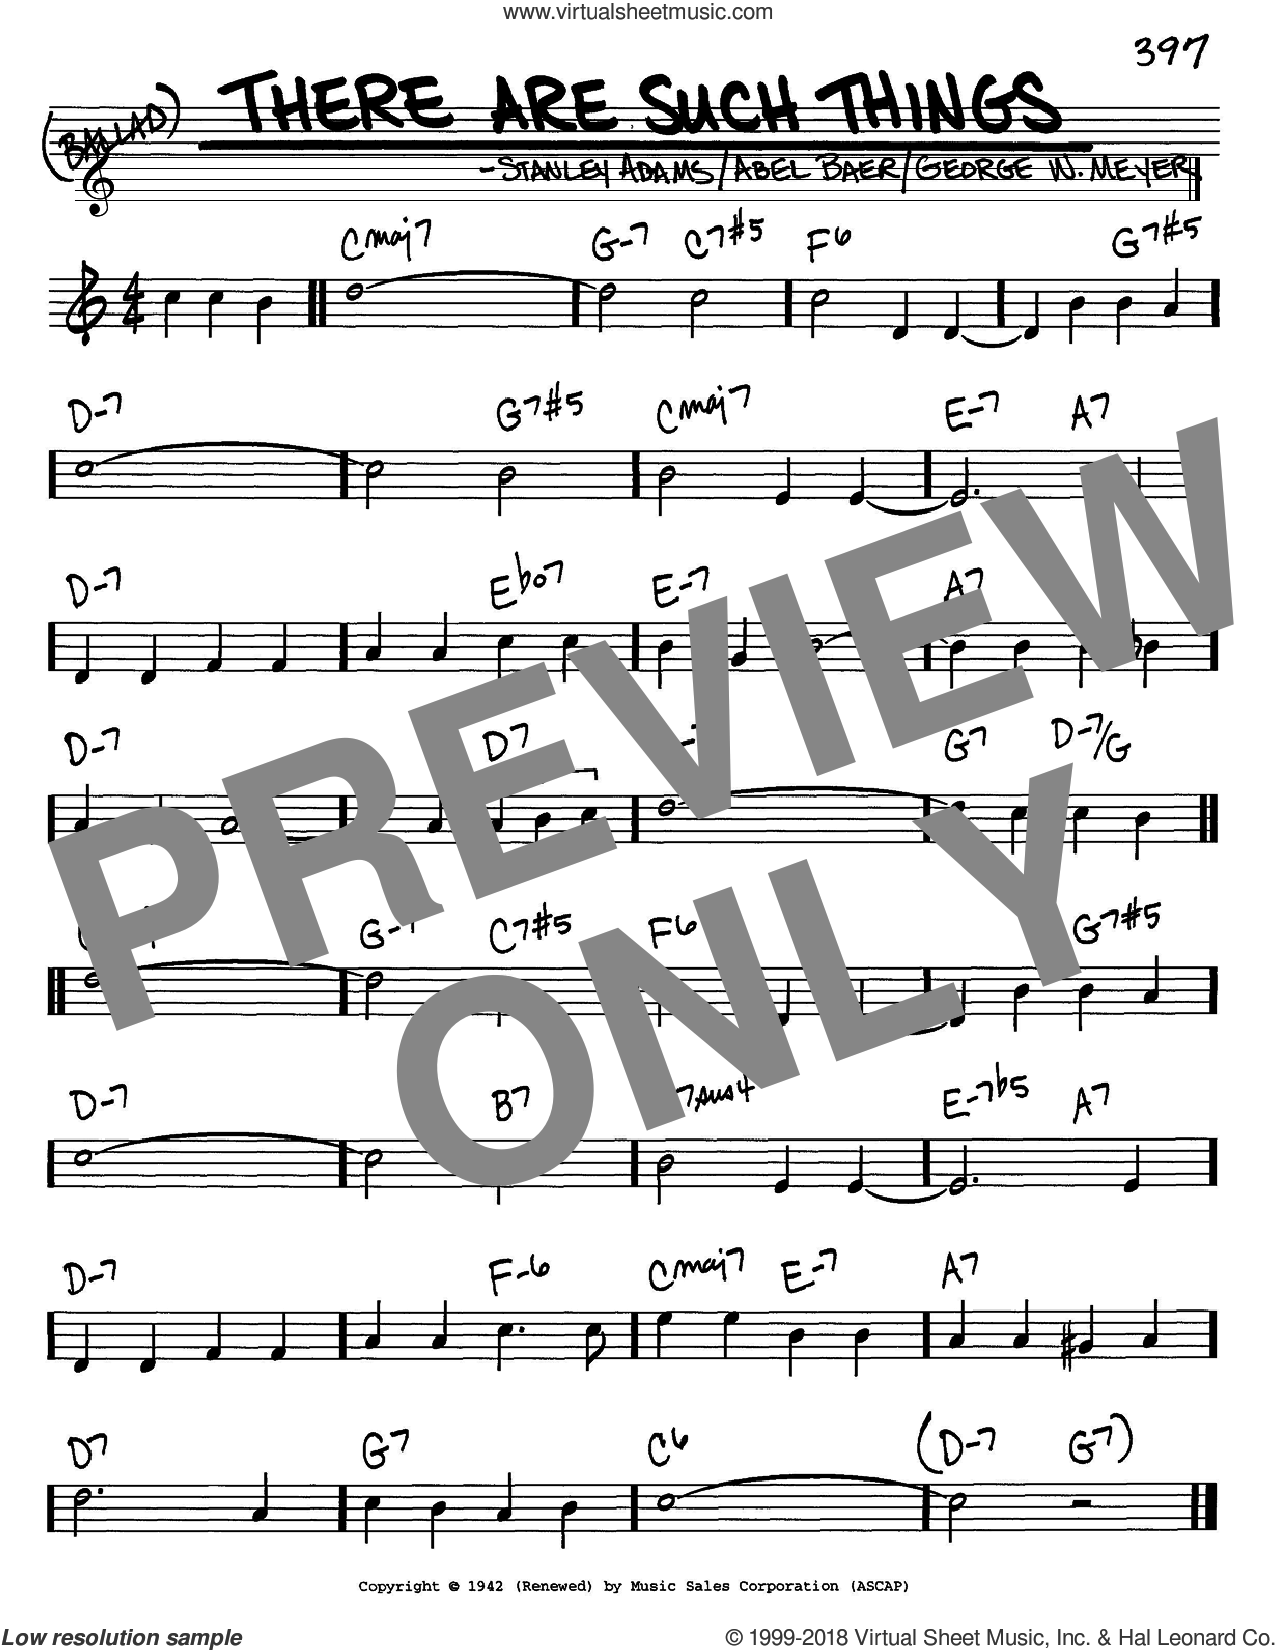 There Are Such Things sheet music for voice and other instruments (in C) by Frank Sinatra, Abel Baer, George W. Meyer and Stanley Adams, intermediate skill level